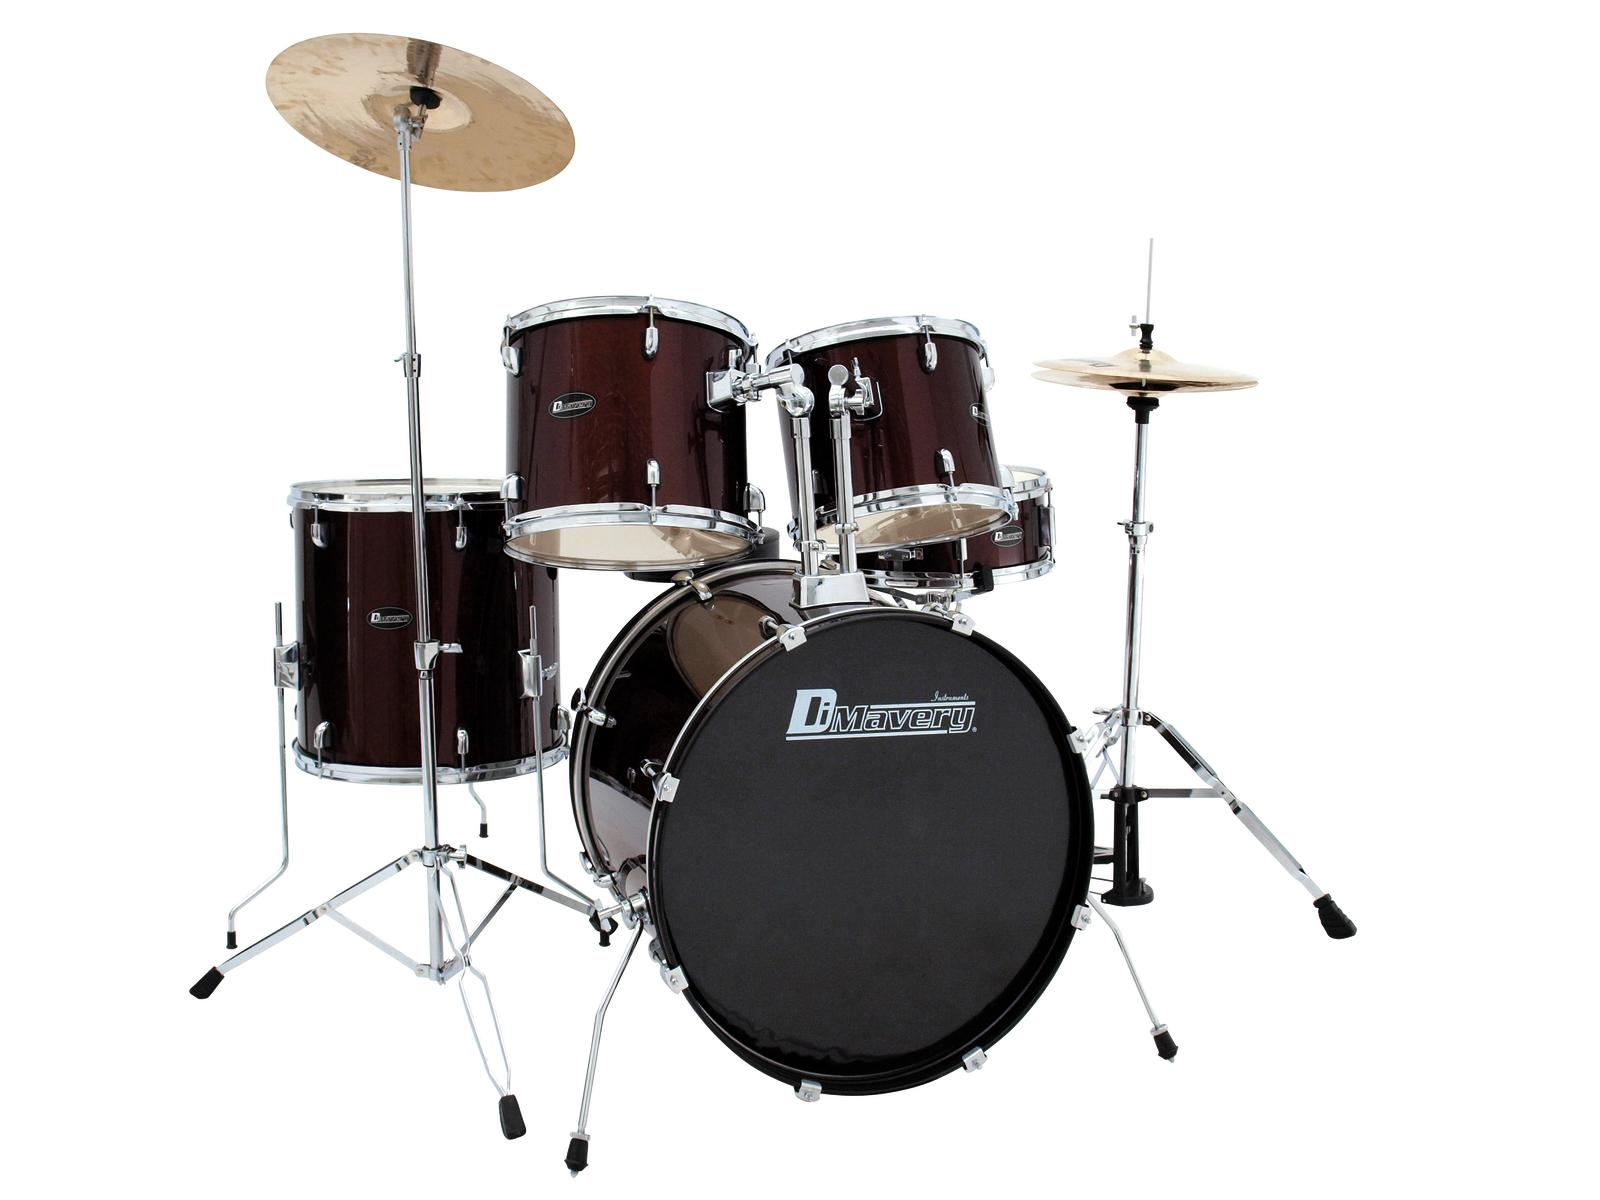 DIMAVERY DS-205 Drum set, verd